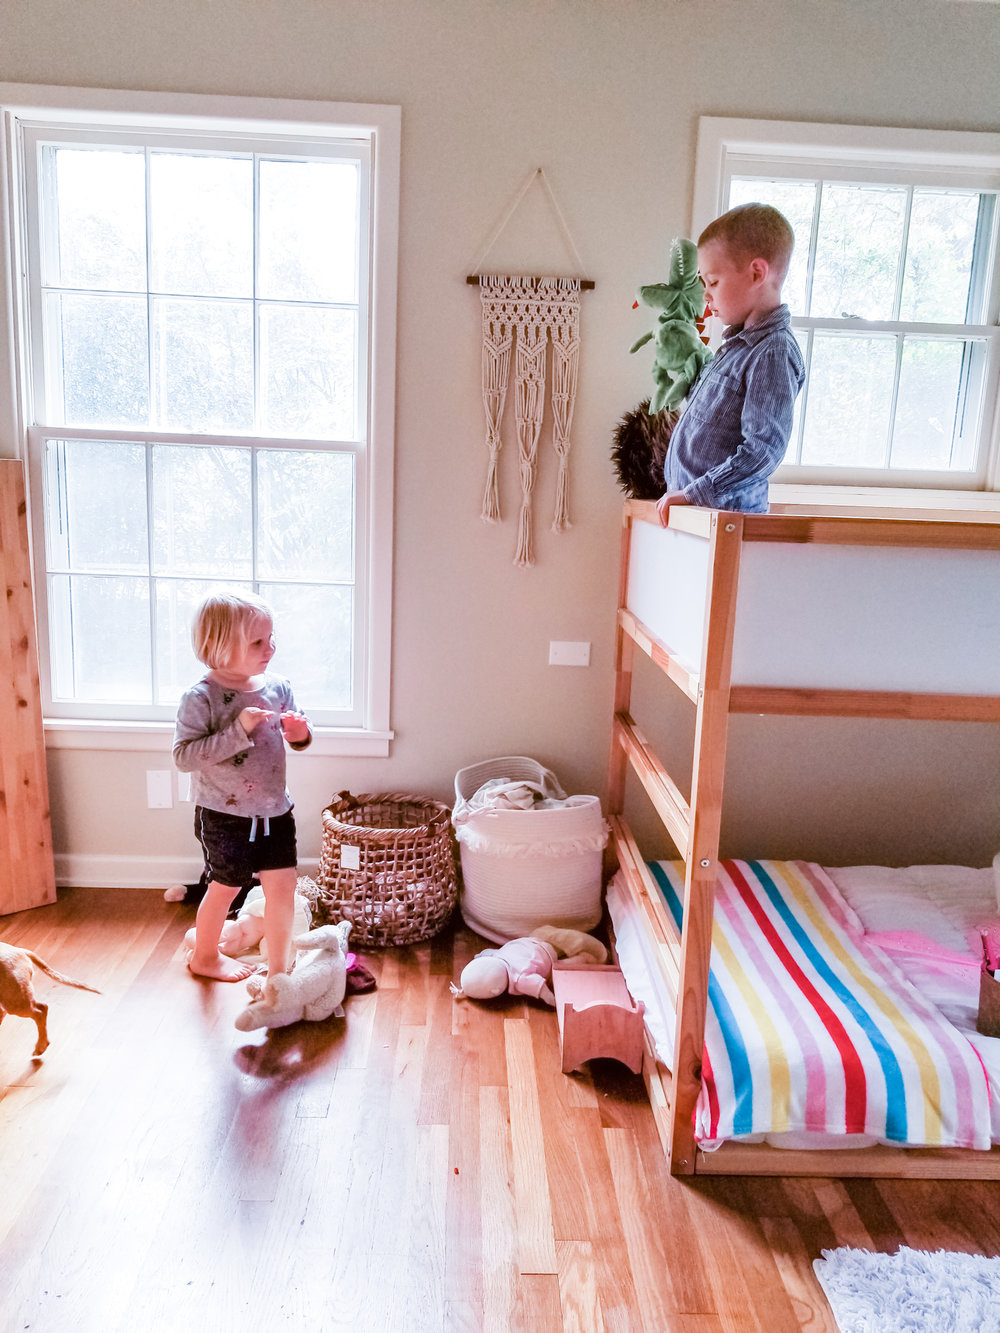 Right after I finished their room the kids wanted to have a puppet show! My dream is that they love being in their room. And that they feel comfortable to both play and be themselves. So this spontaneous play right after I had finished their room really warmed my heart!